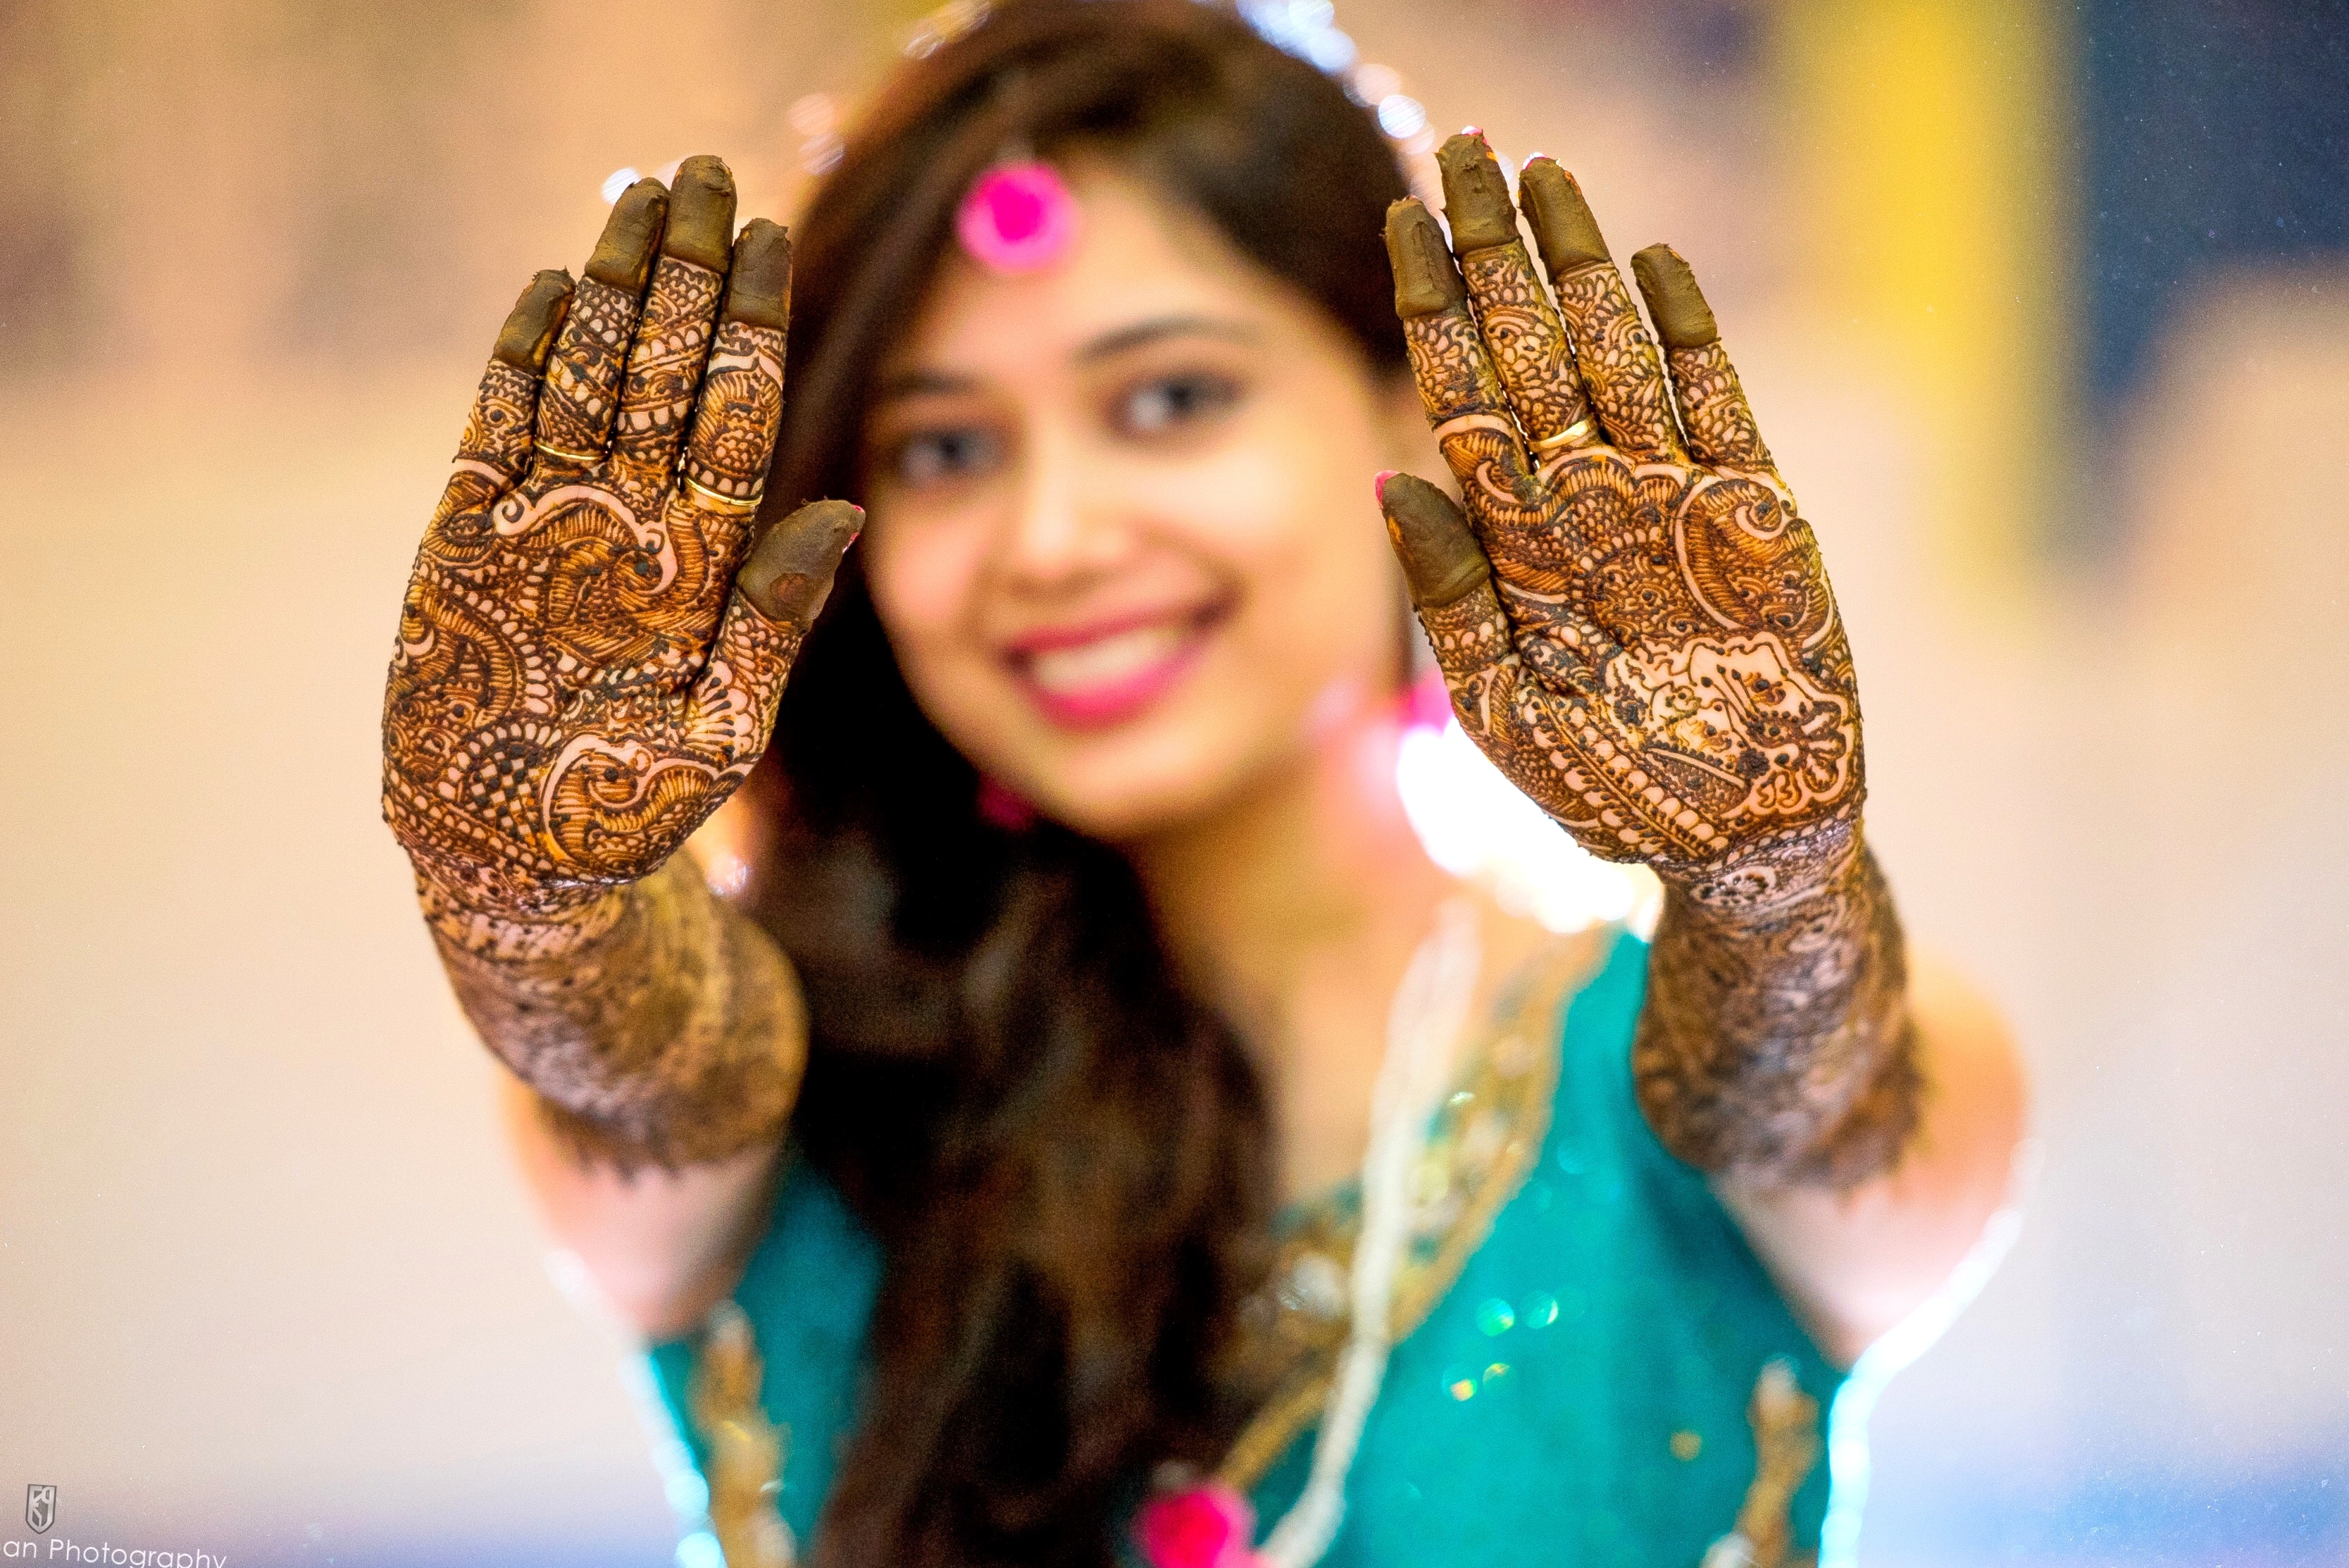 Traditional Indian Henna Designs: TOP 10 INTRICATE TRADITIONAL INDIAN BRIDAL HENNA MEHNDI